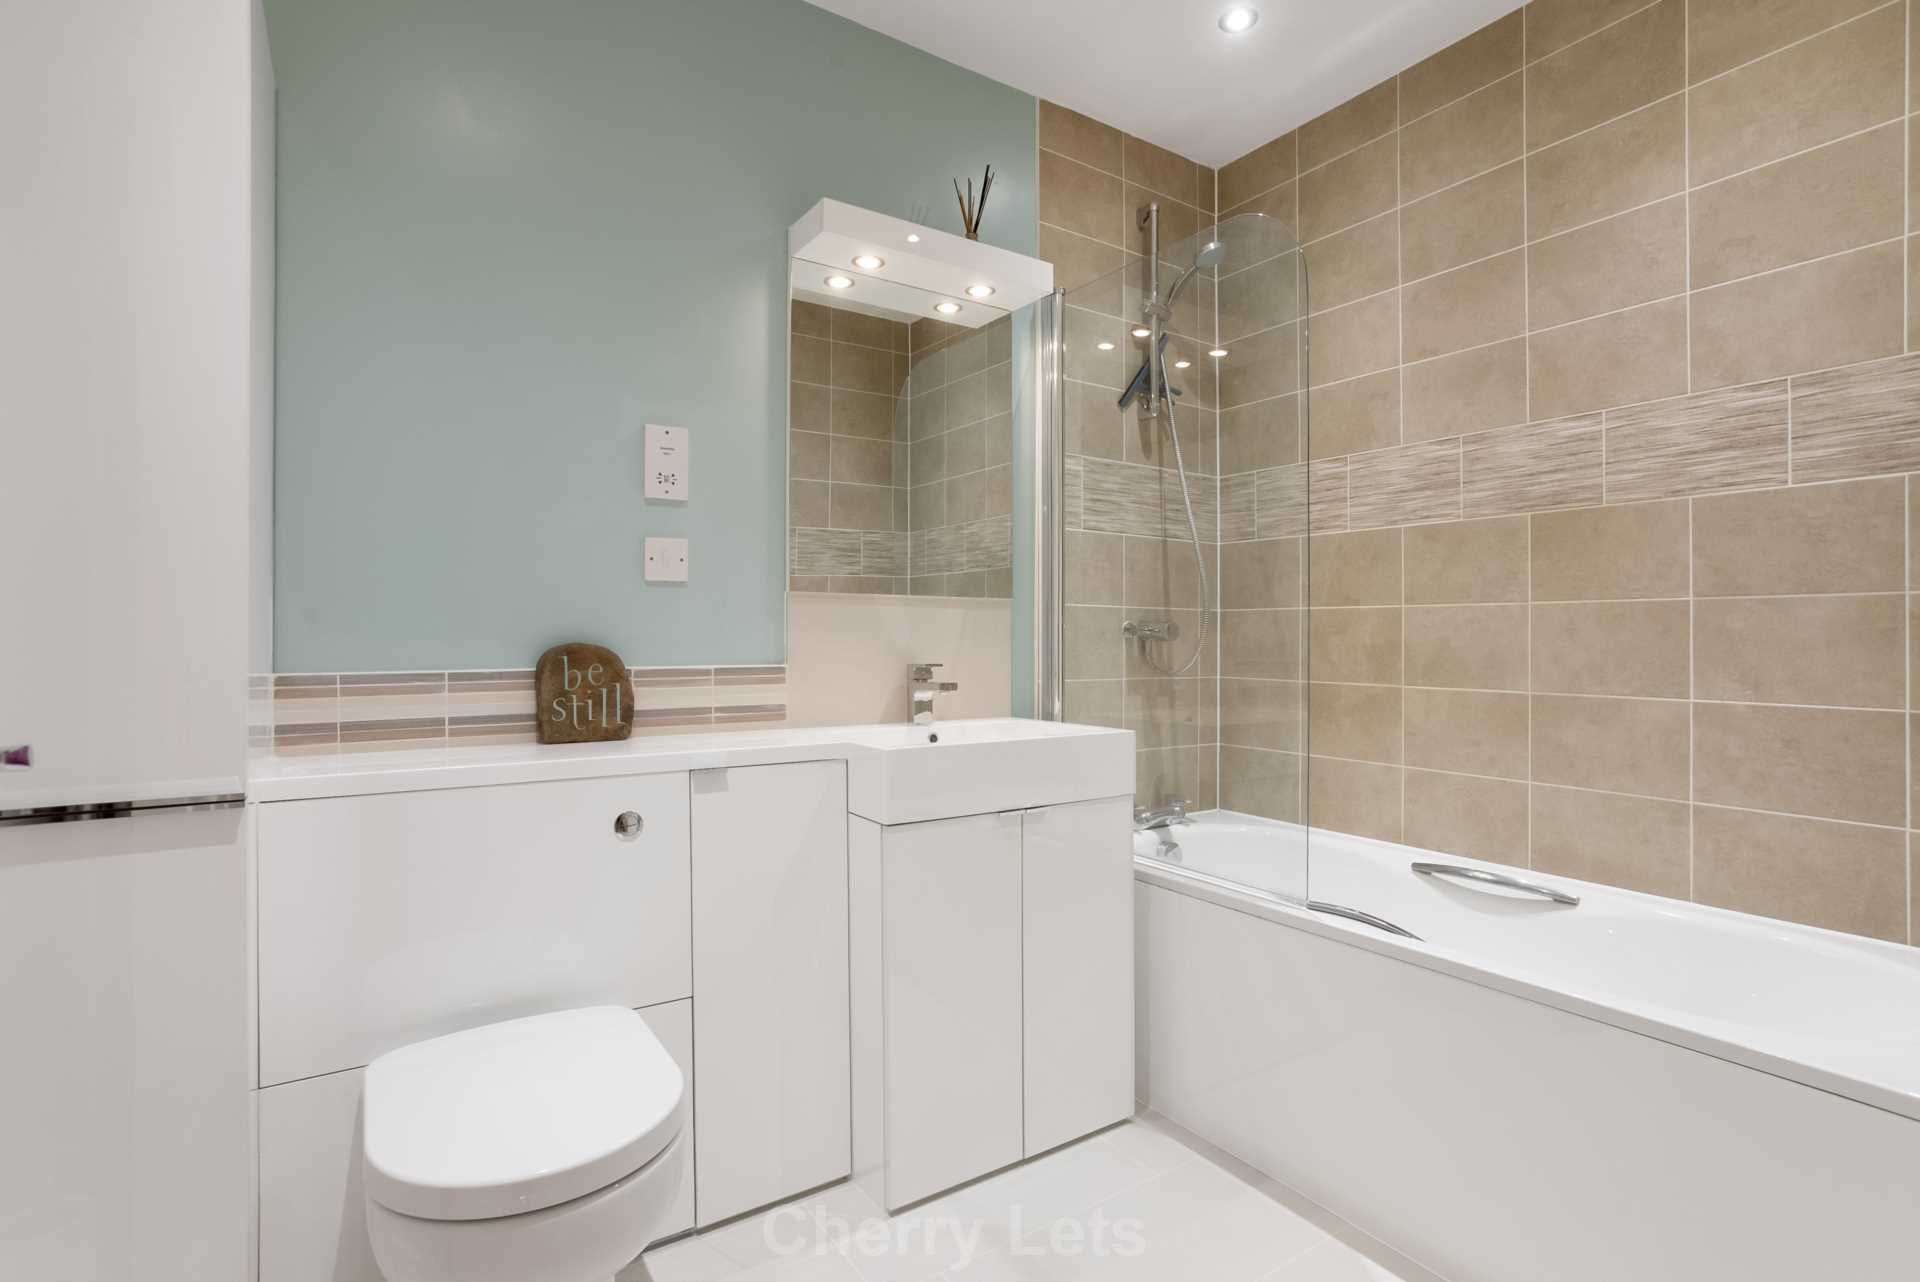 2 bed apartment to rent in Astrop Grange, Kings Sutton, OX17  - Property Image 7